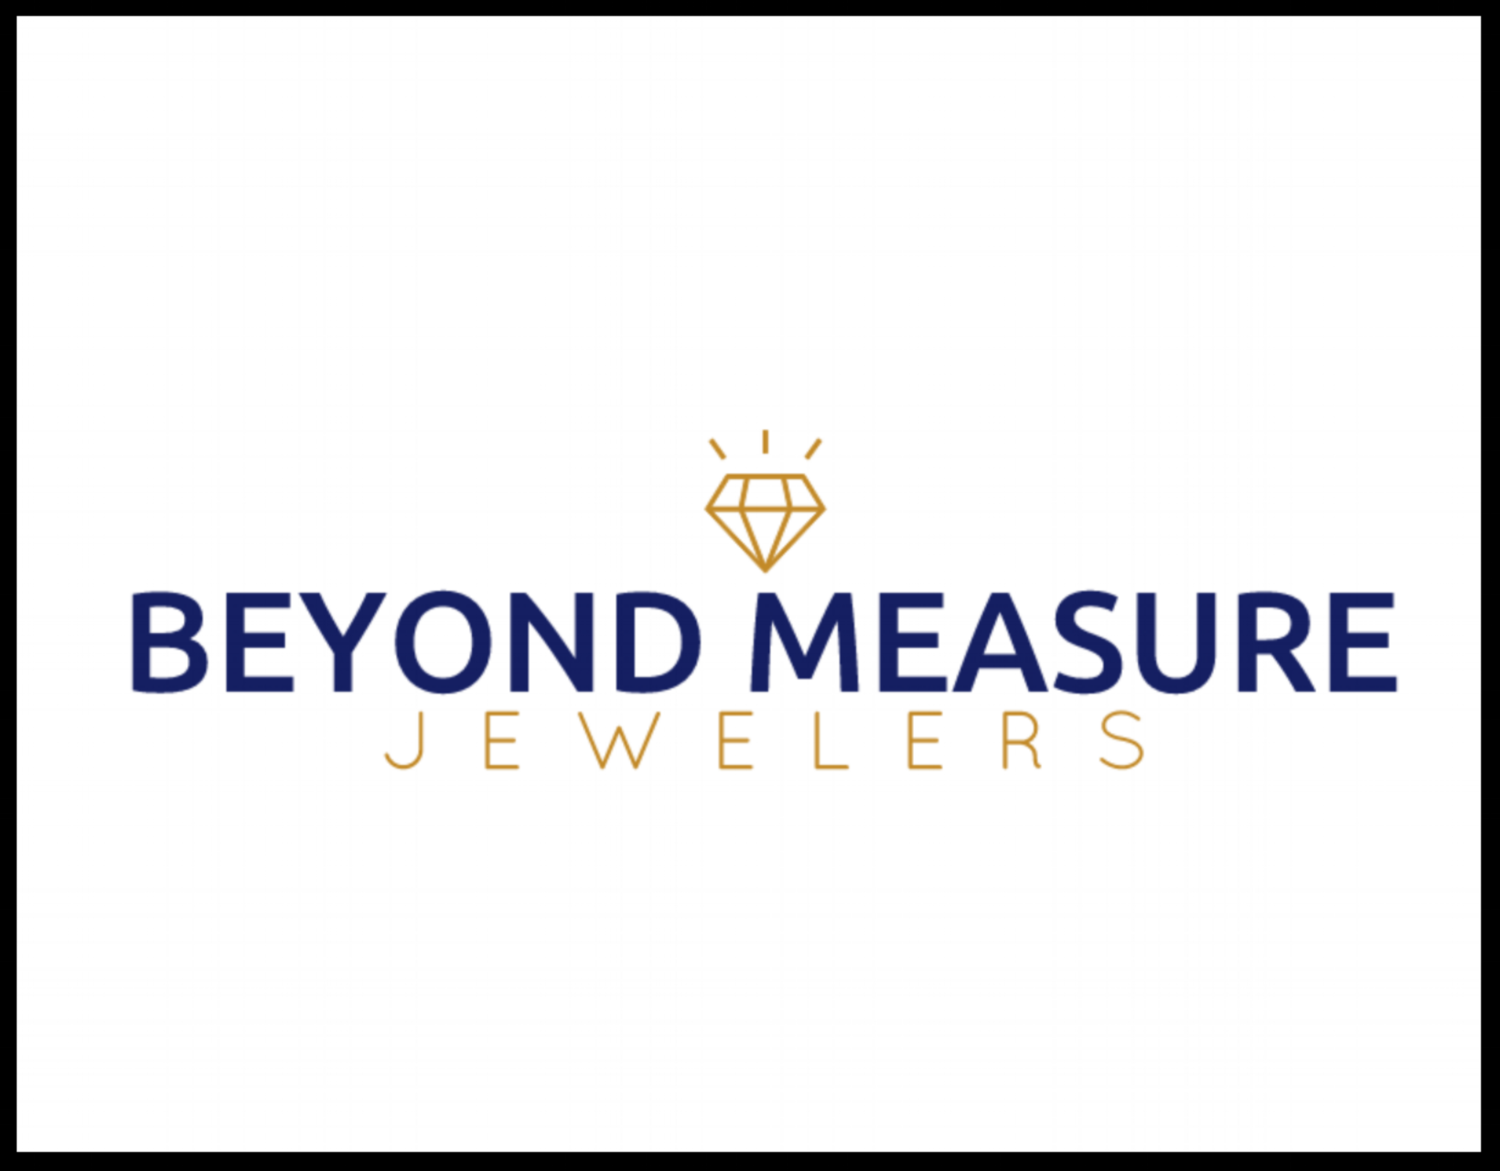 Beyond Measure Jewelers